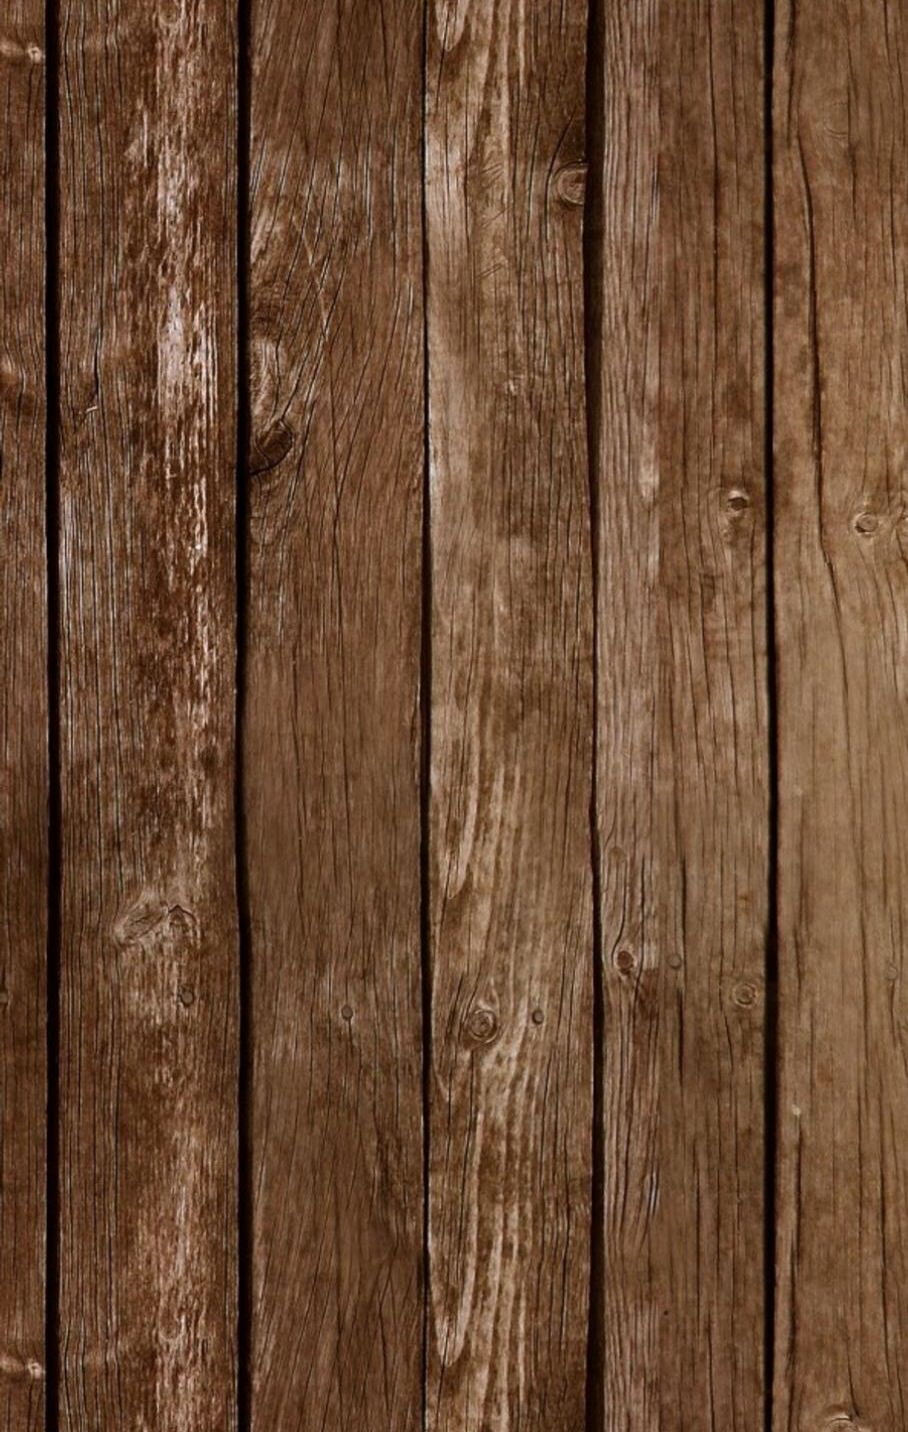 Wood iphone wallpaper | iPhone wallpapers | Wood wallpaper, Wooden wallpaper e Wallpaper backgrounds